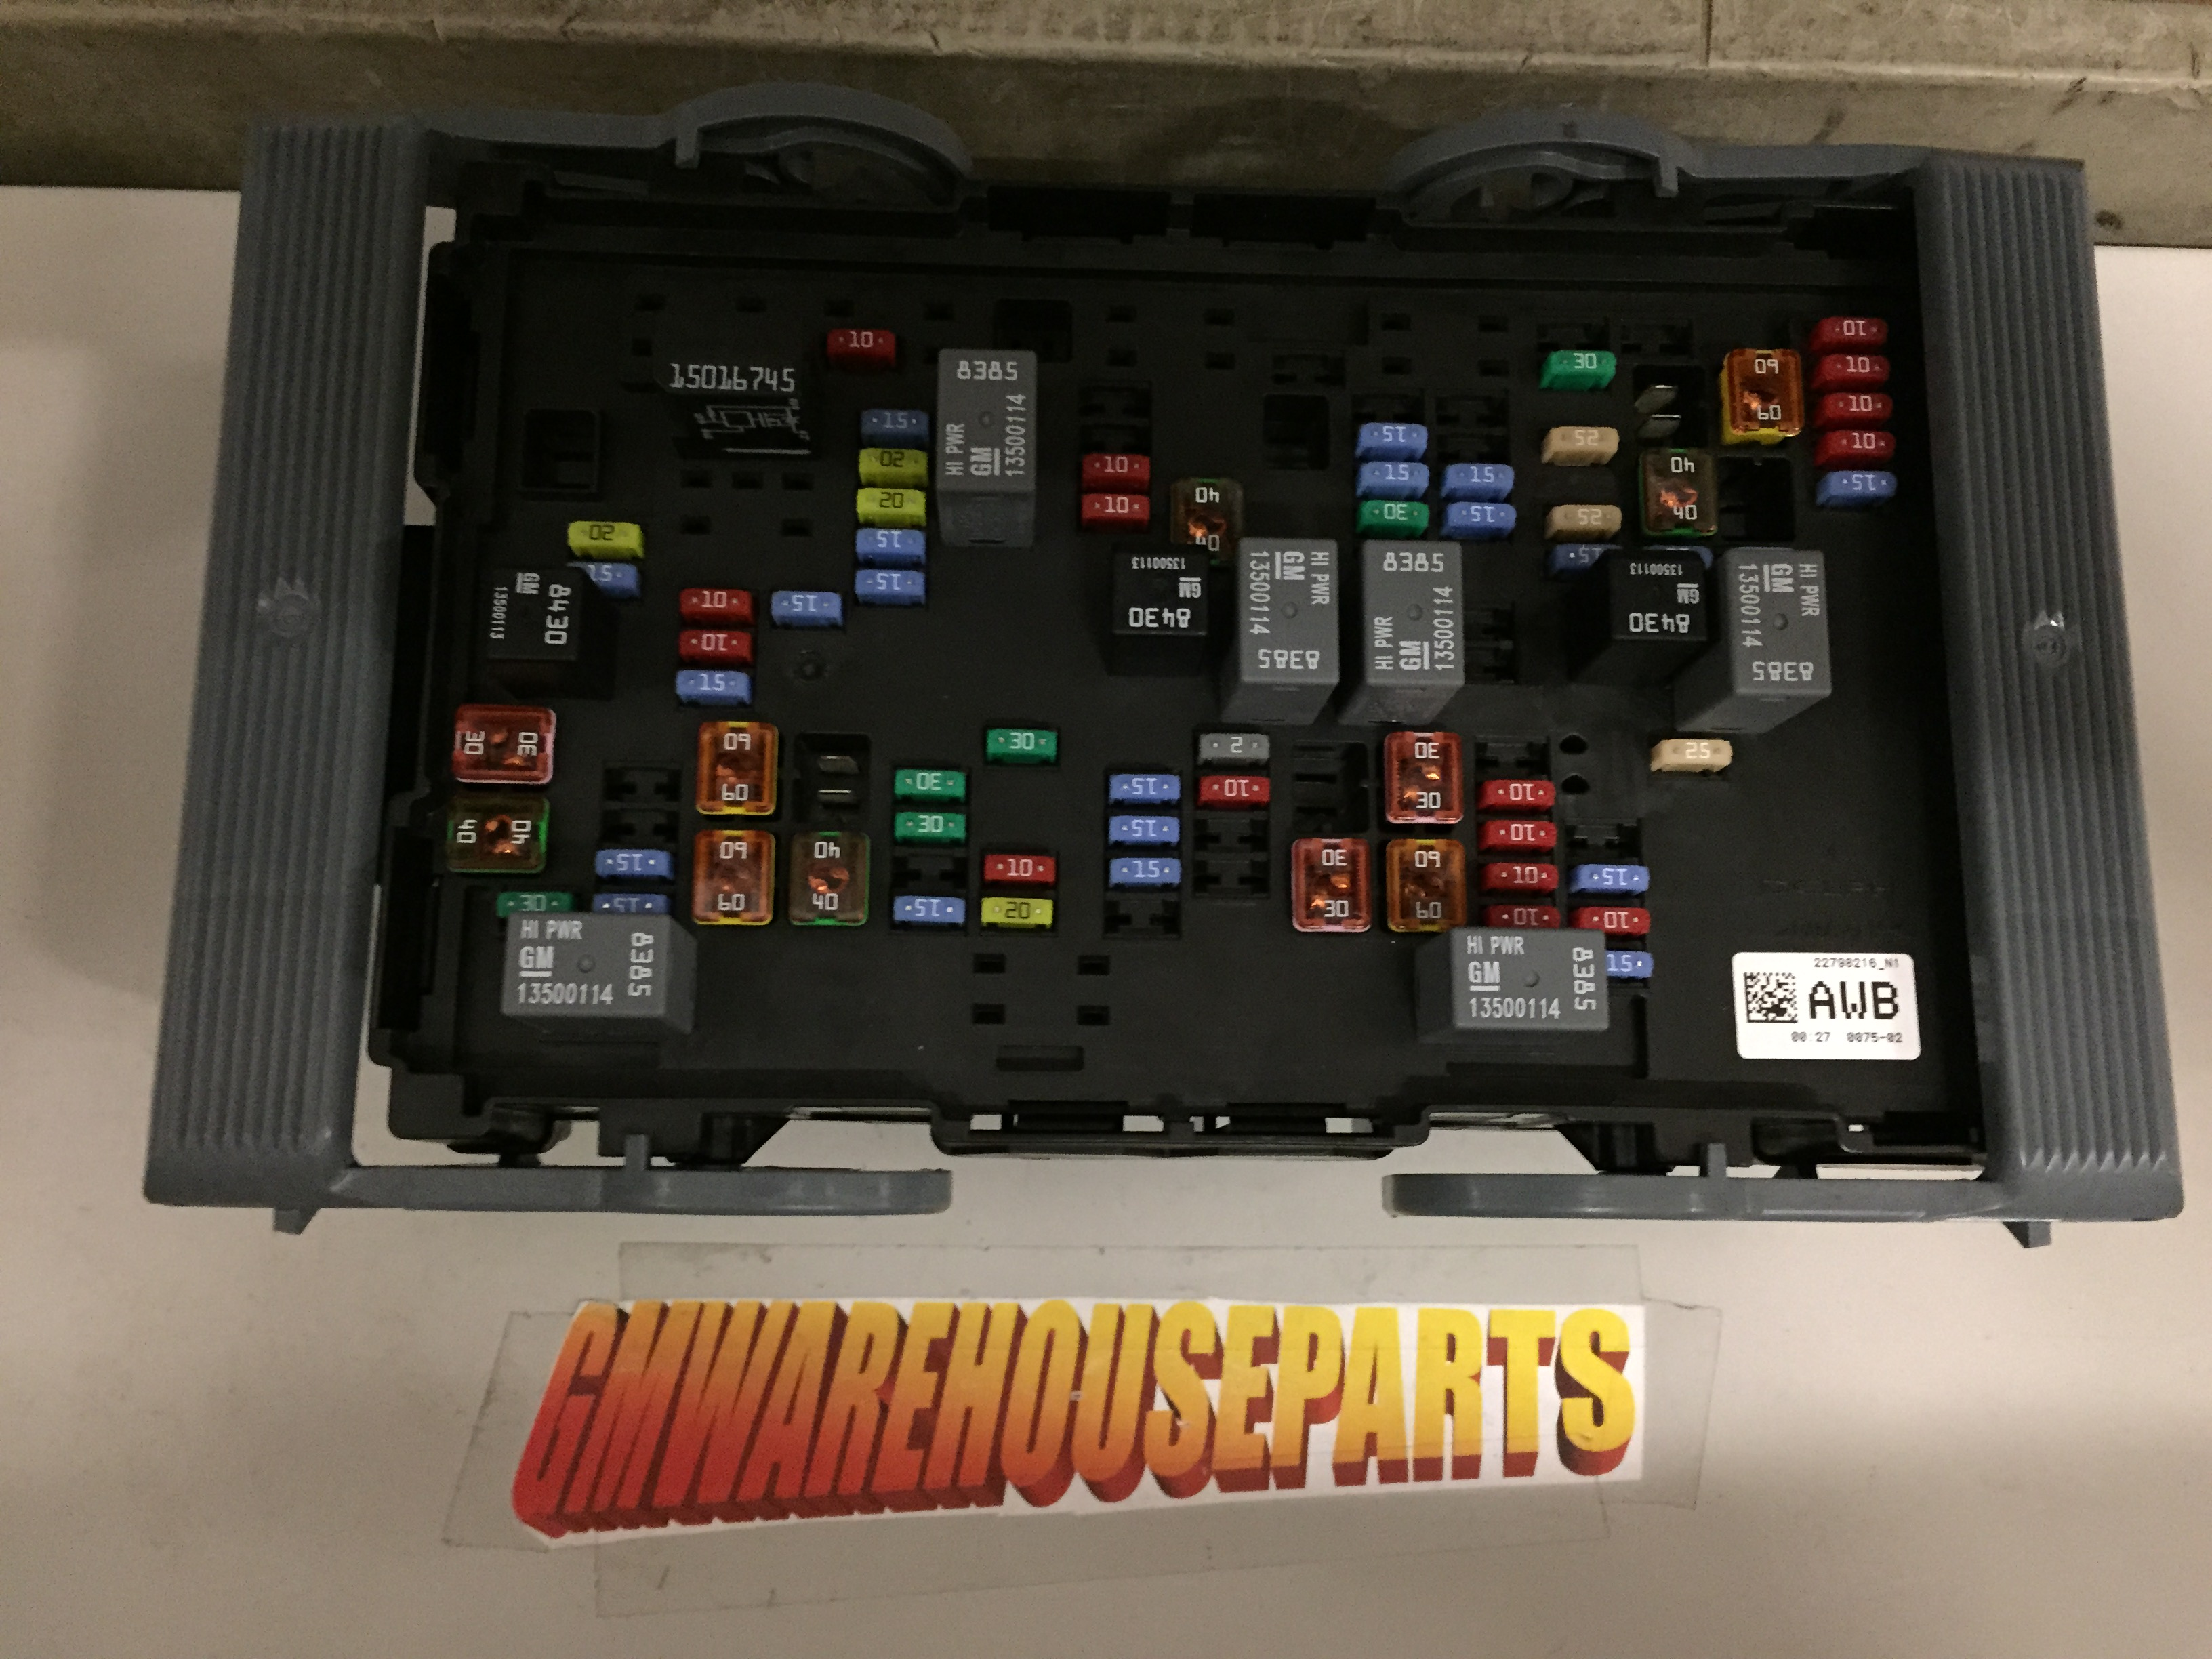 Chevy Silverado Fuse Box Diagram On Chevrolet Silverado 2500 Hd Fuse